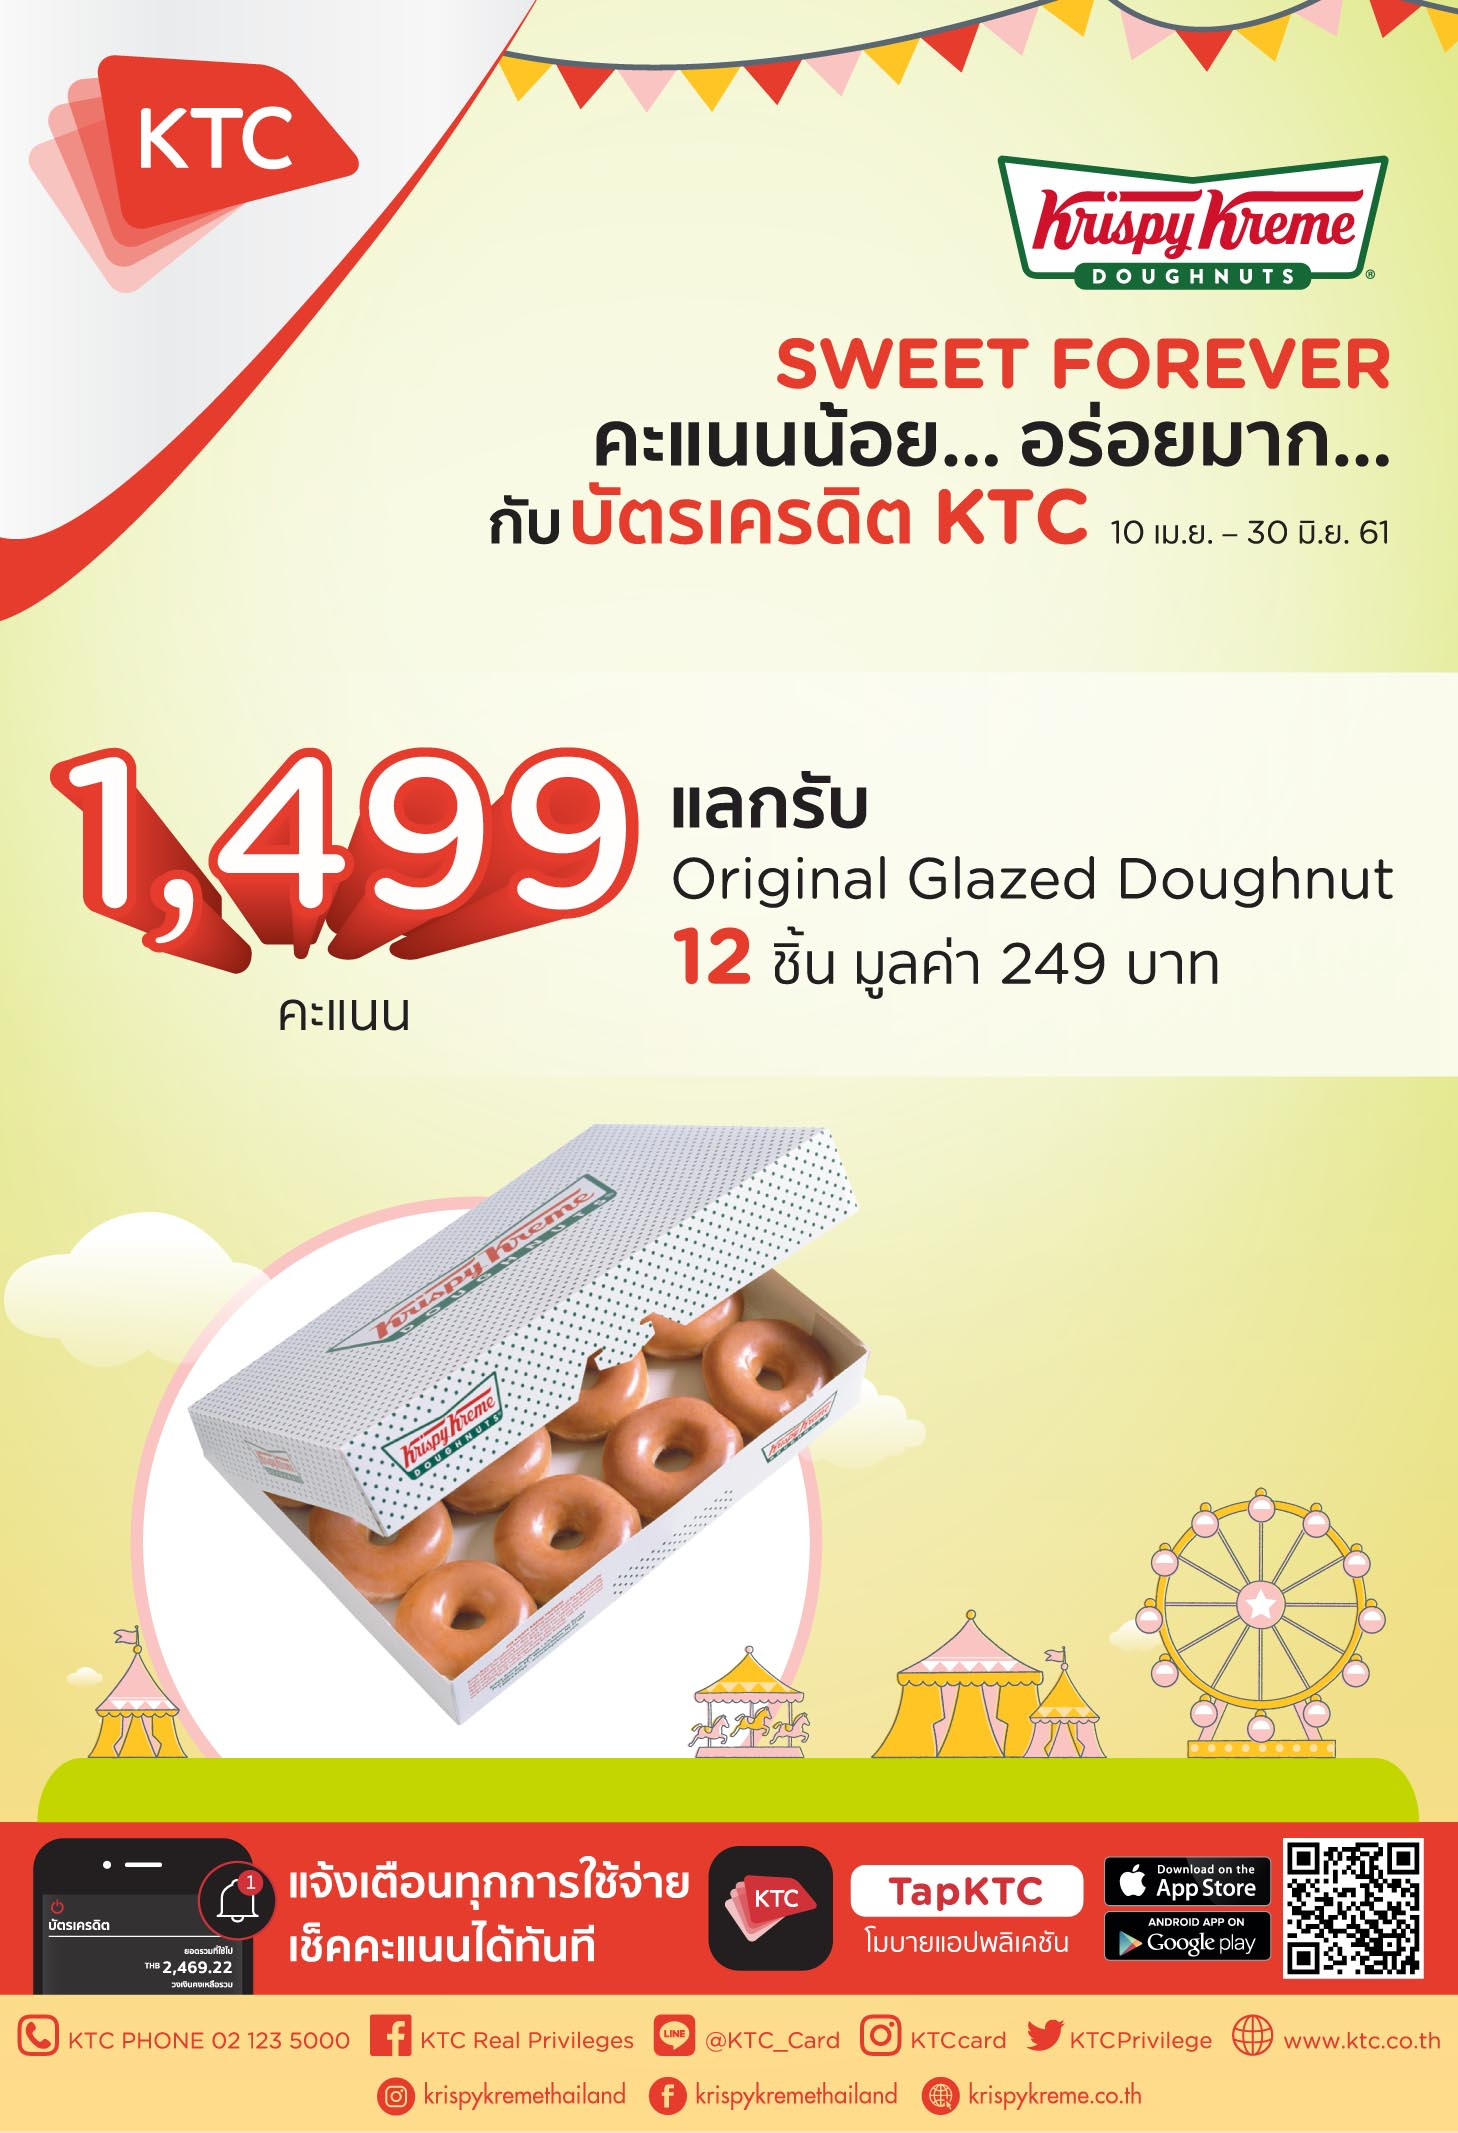 krispykreme_website_KTC_full